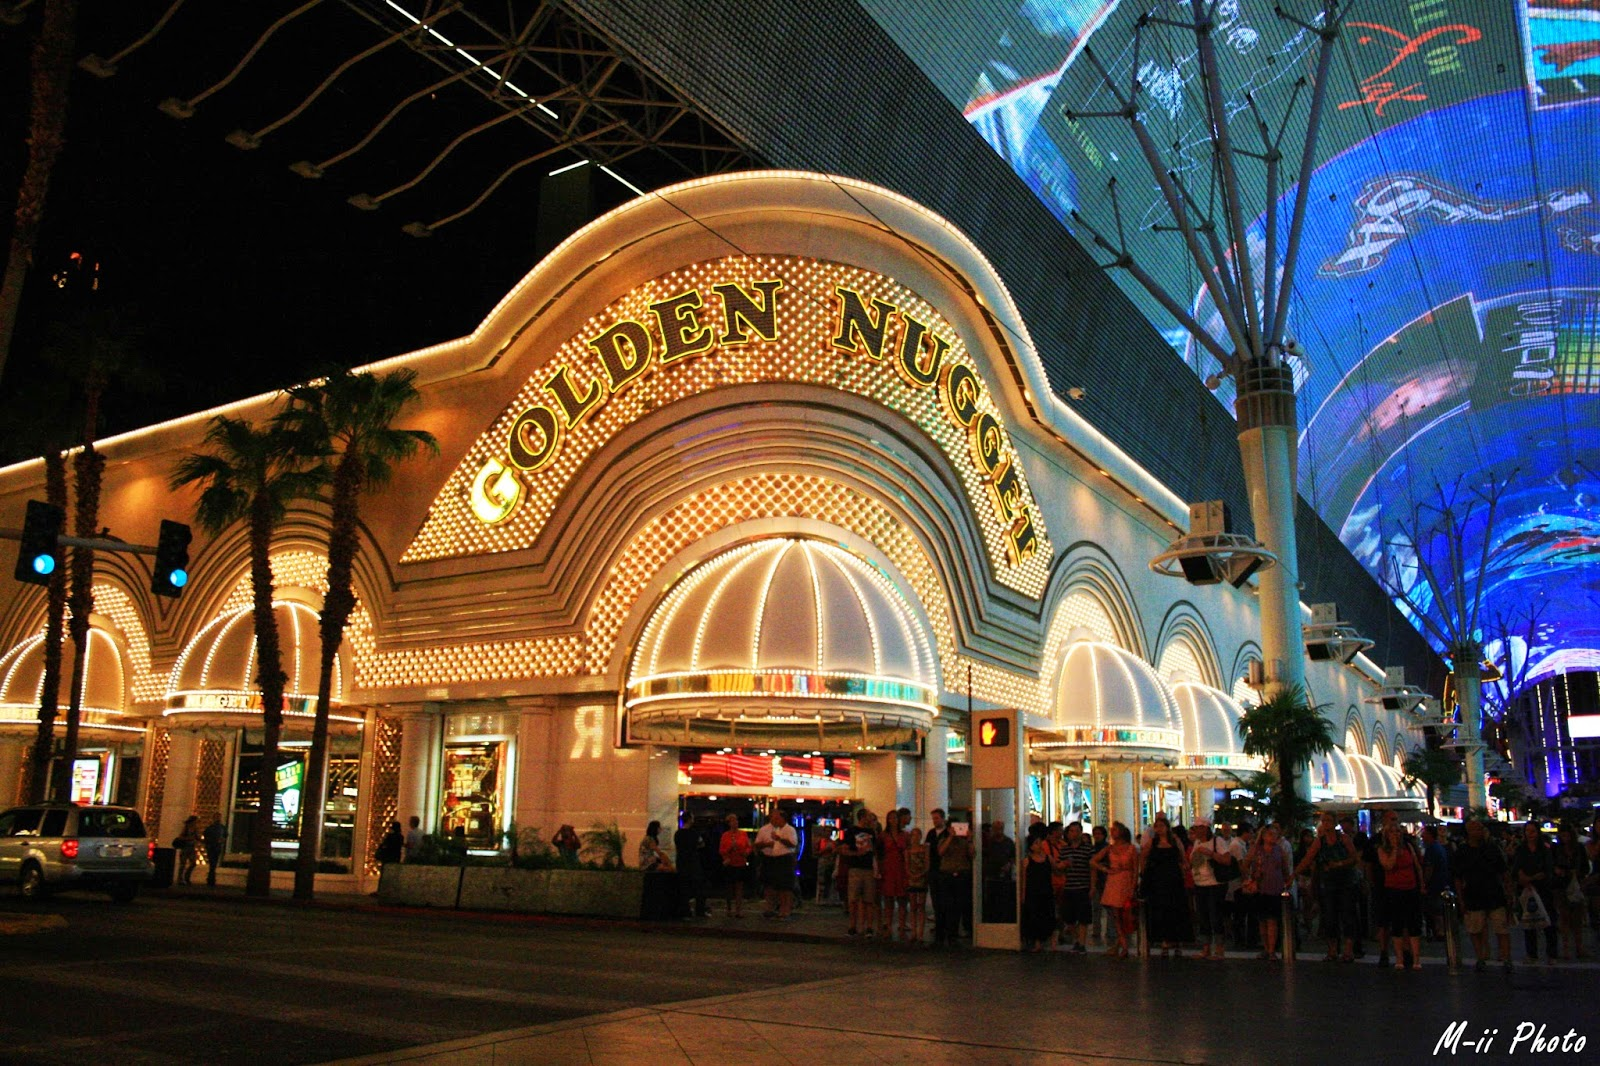 M-ii Photo : Las Vegas Golden Nugget